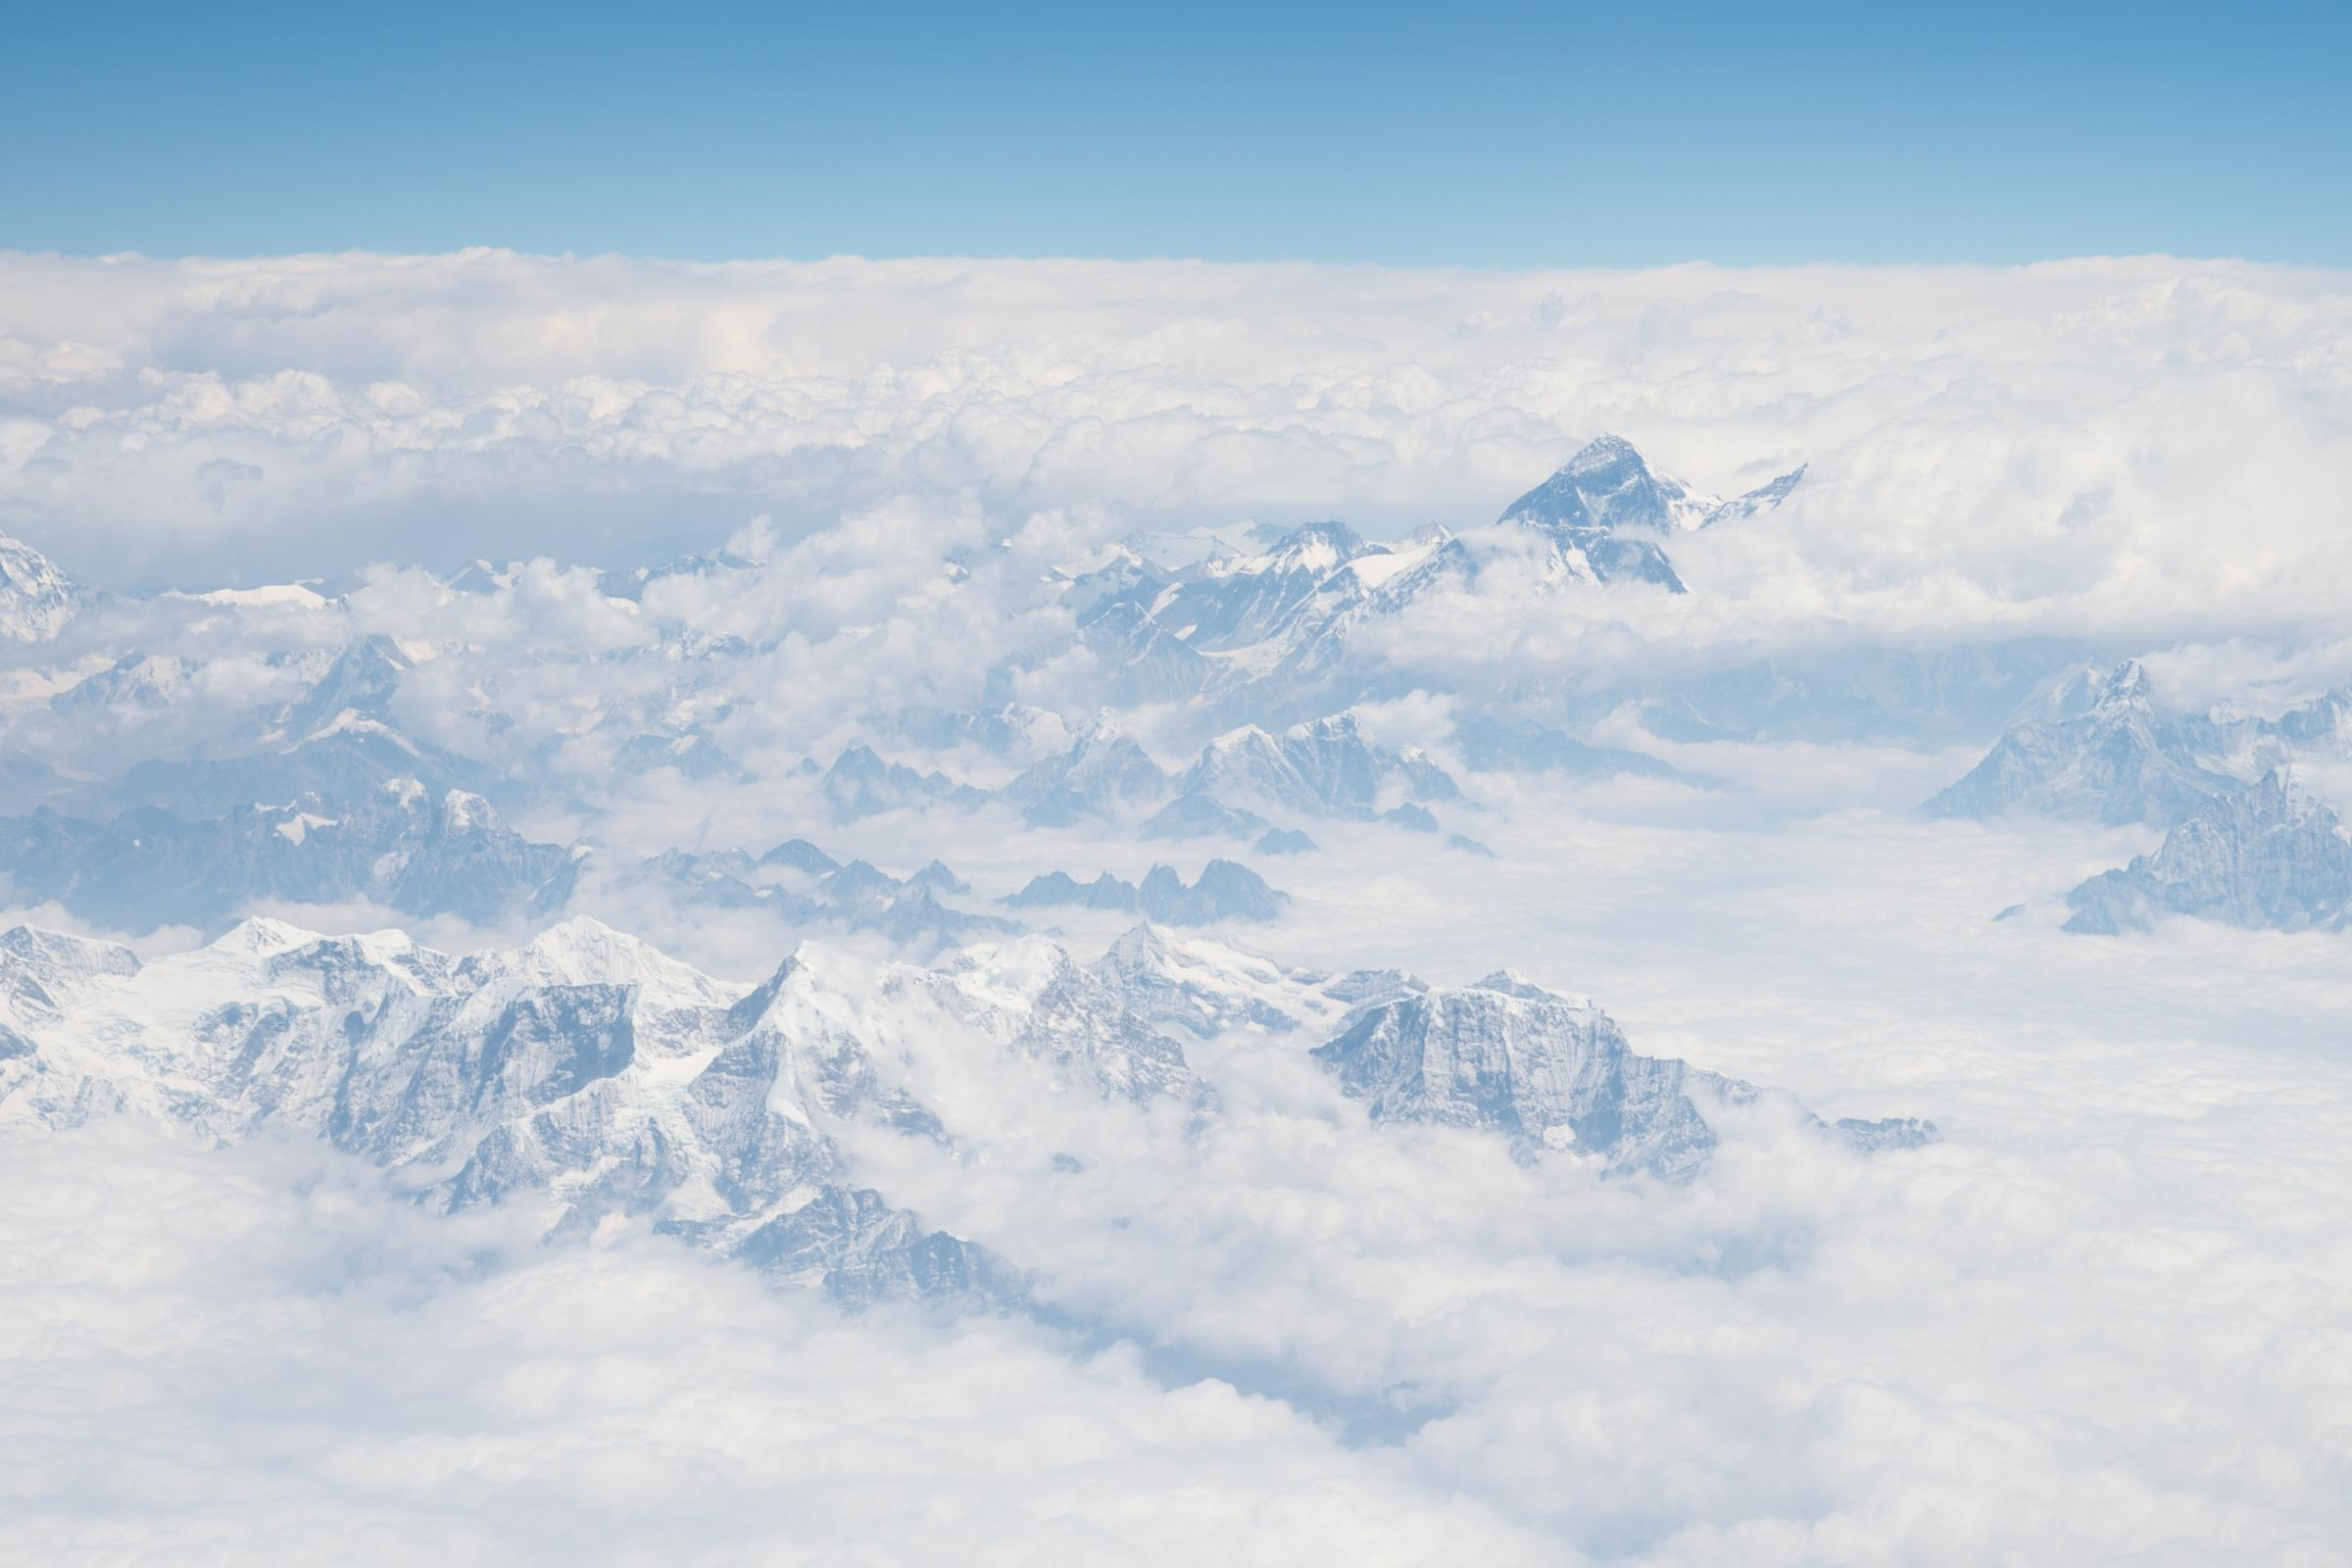 Mount Everest and the Himalayas